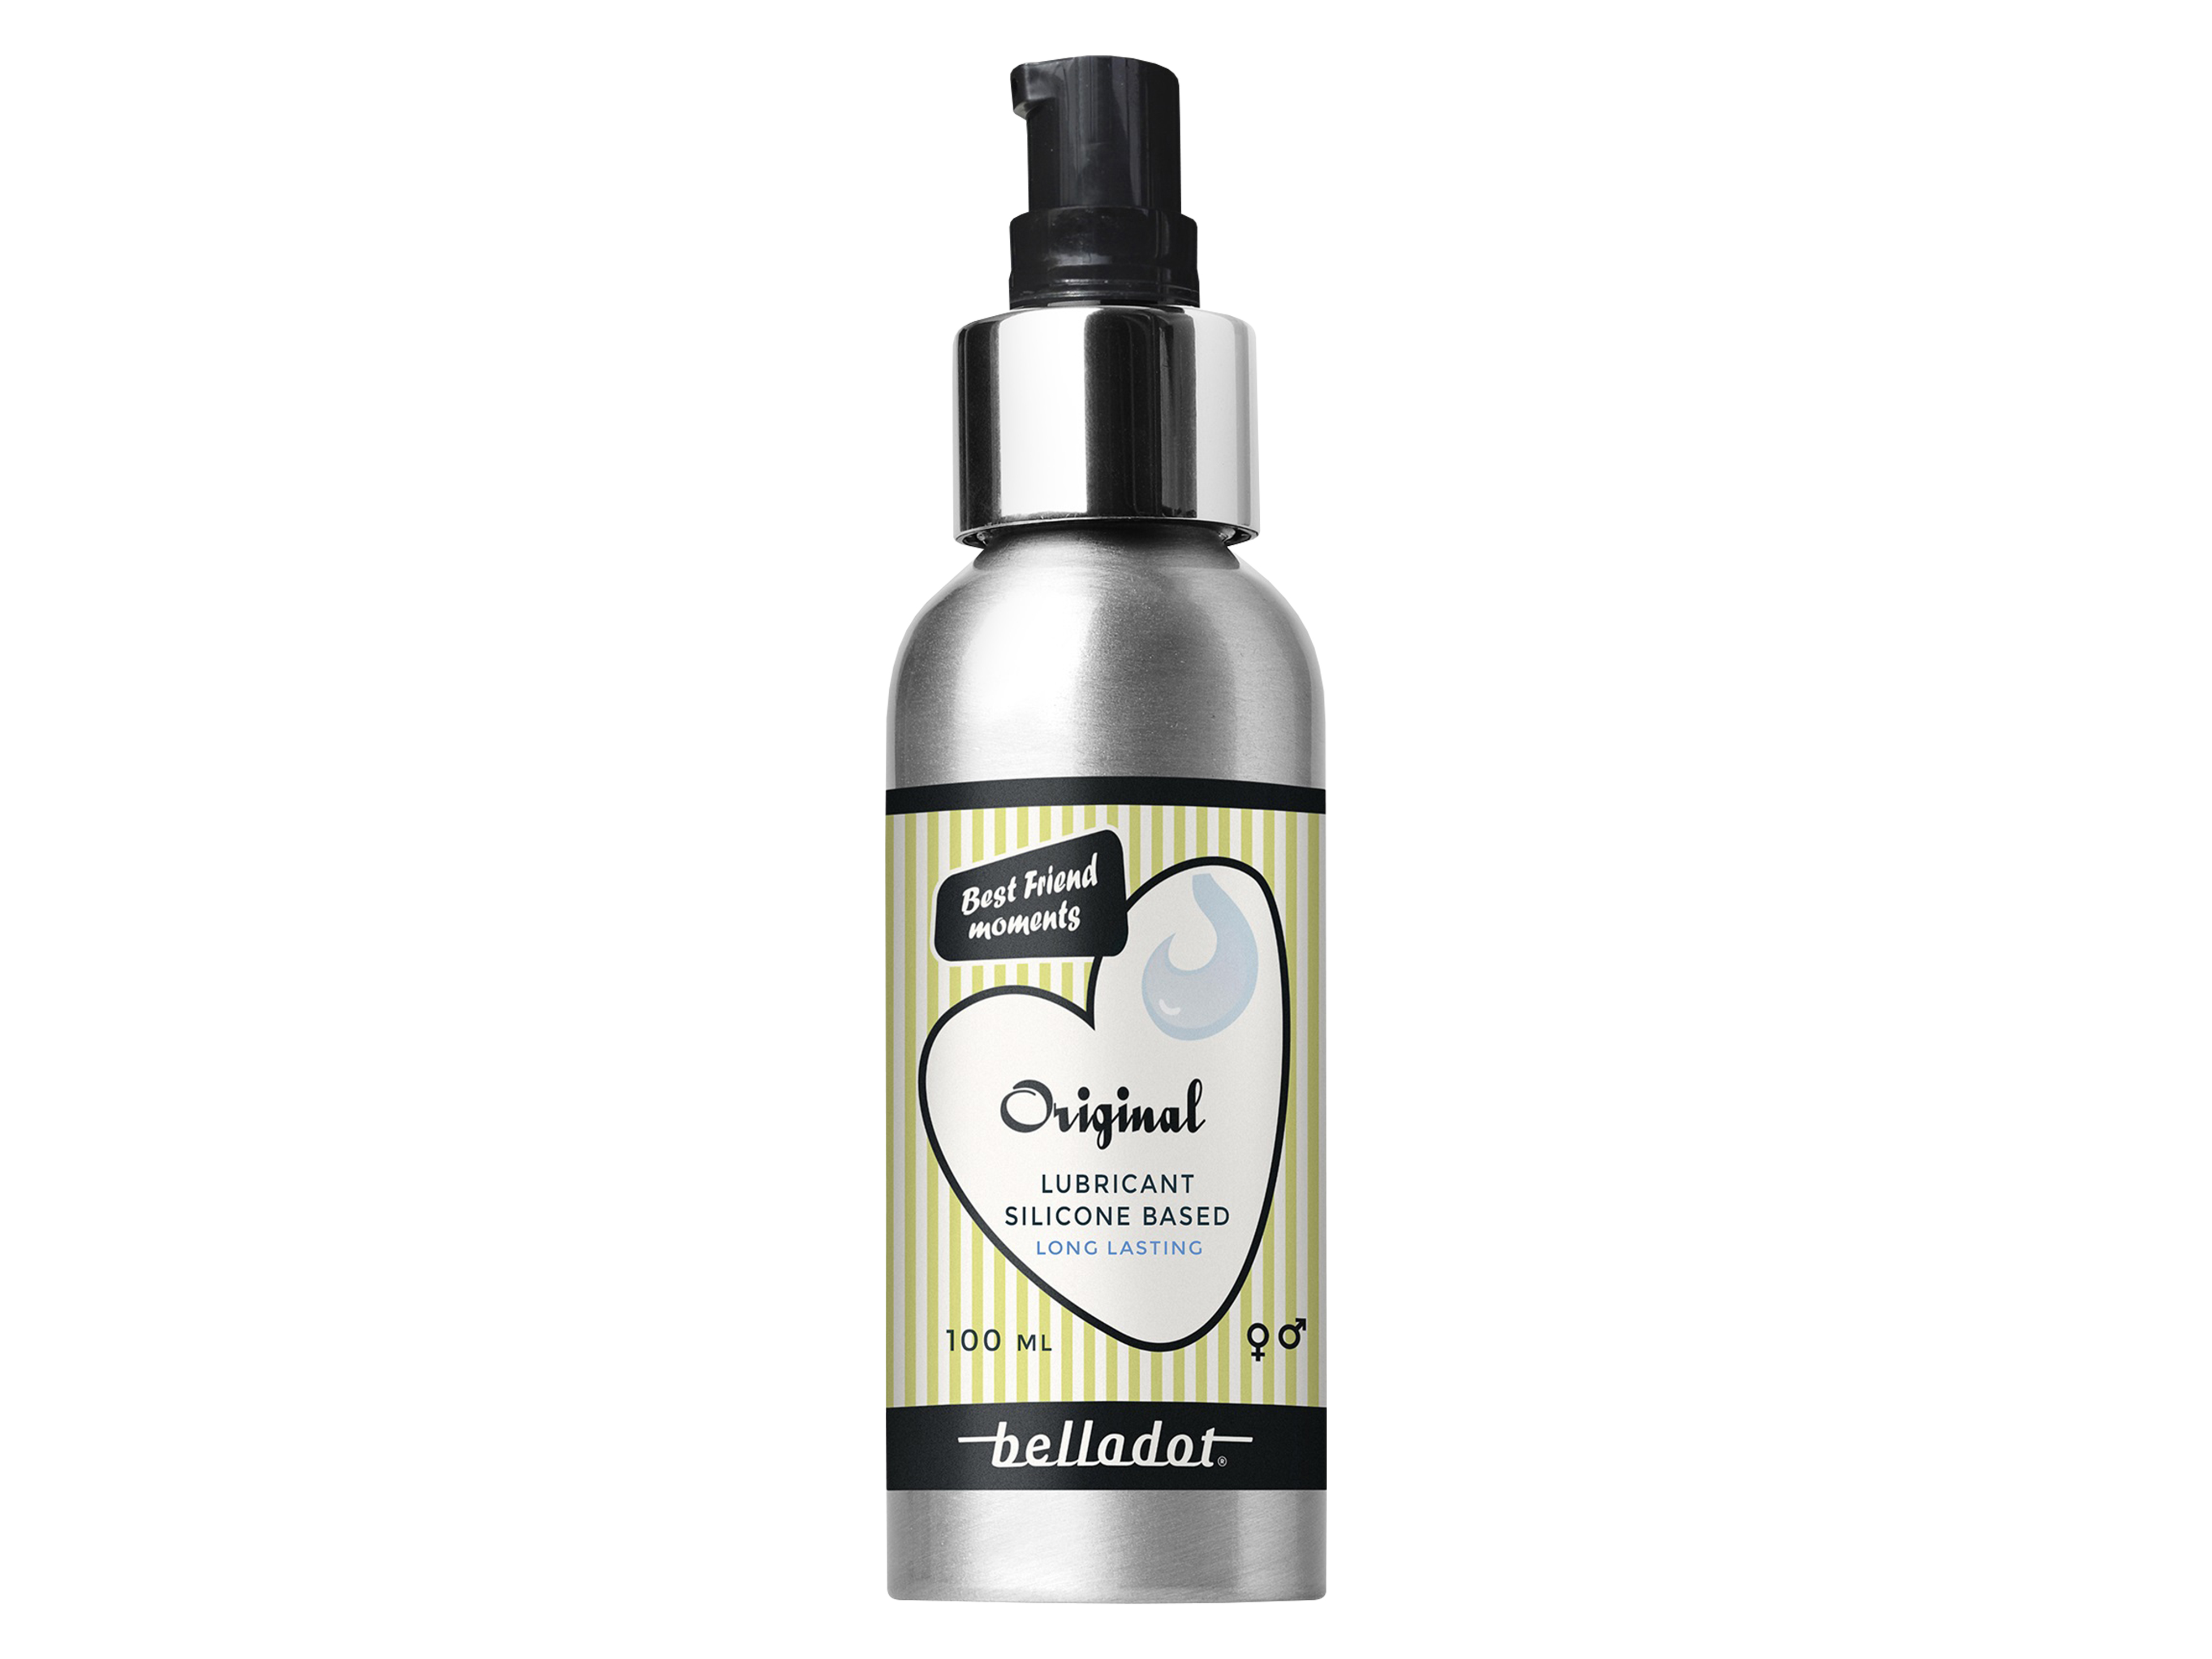 Belladot Original Lubricant Silicone Based Long Lasting, 100 ml